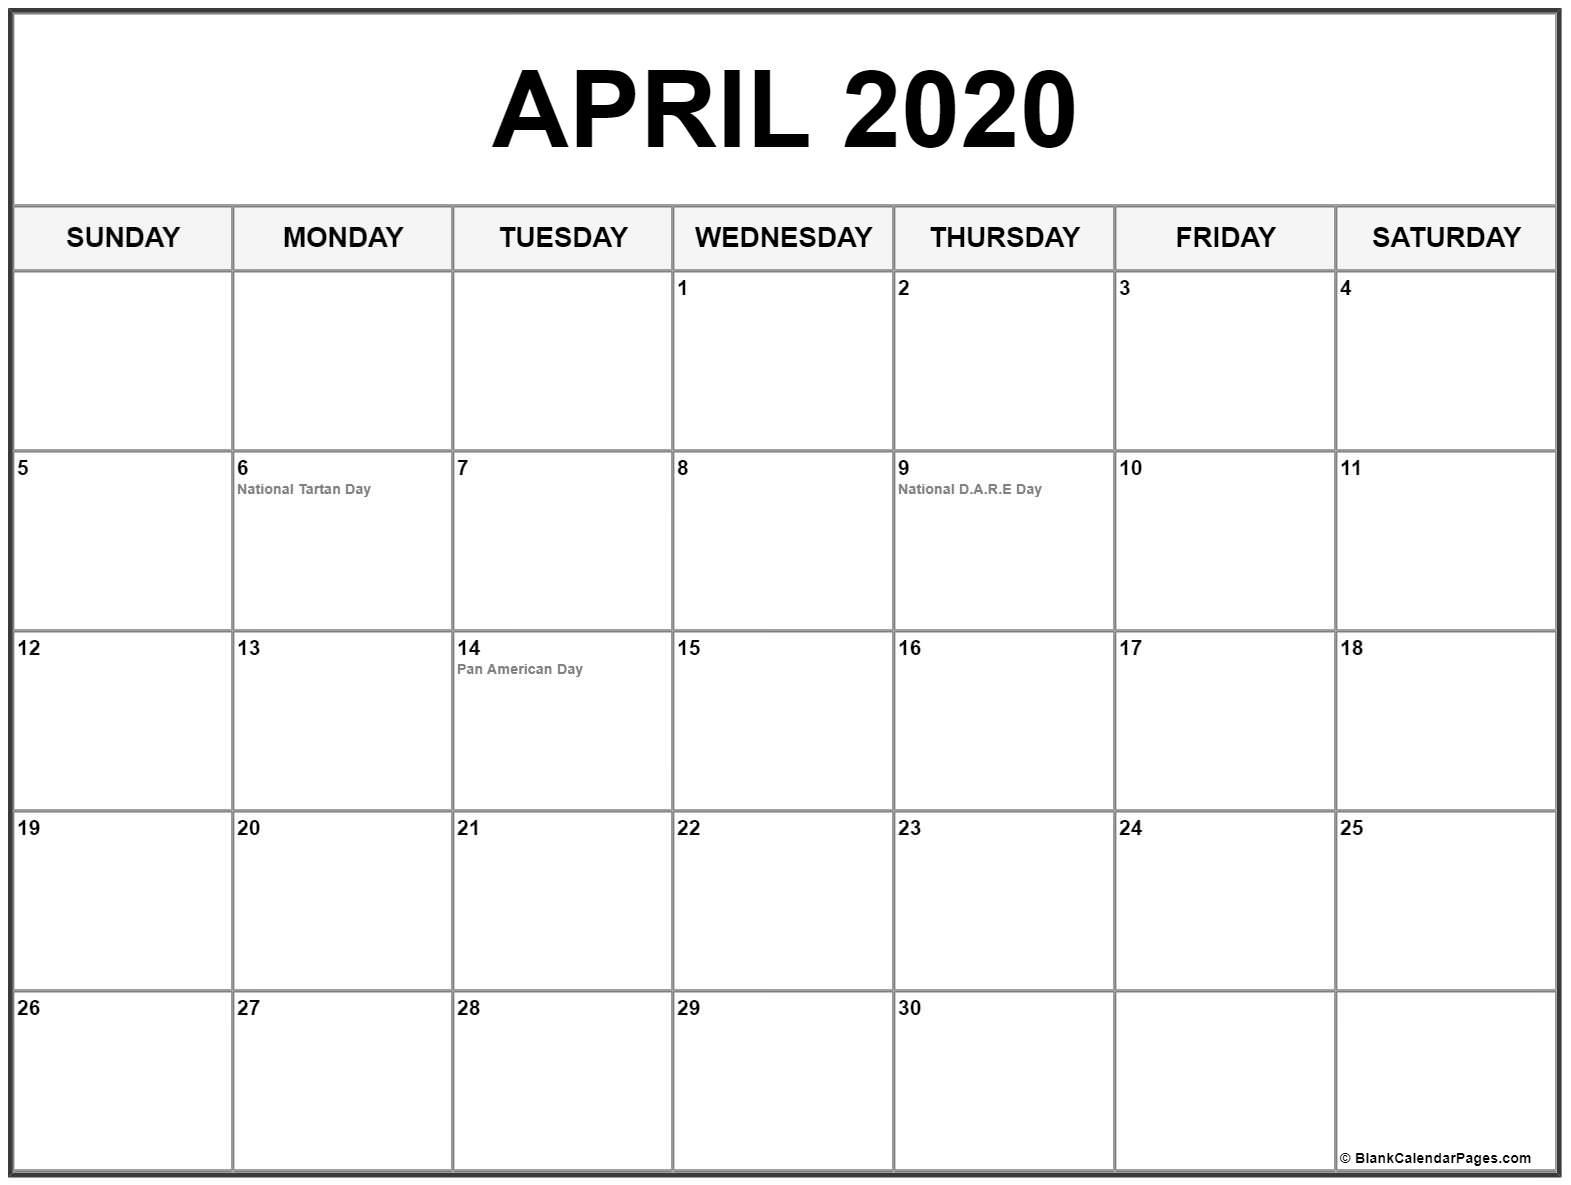 Collection Of April 2020 Calendars With Holidays Dashing 2020 Calendar With Holidays